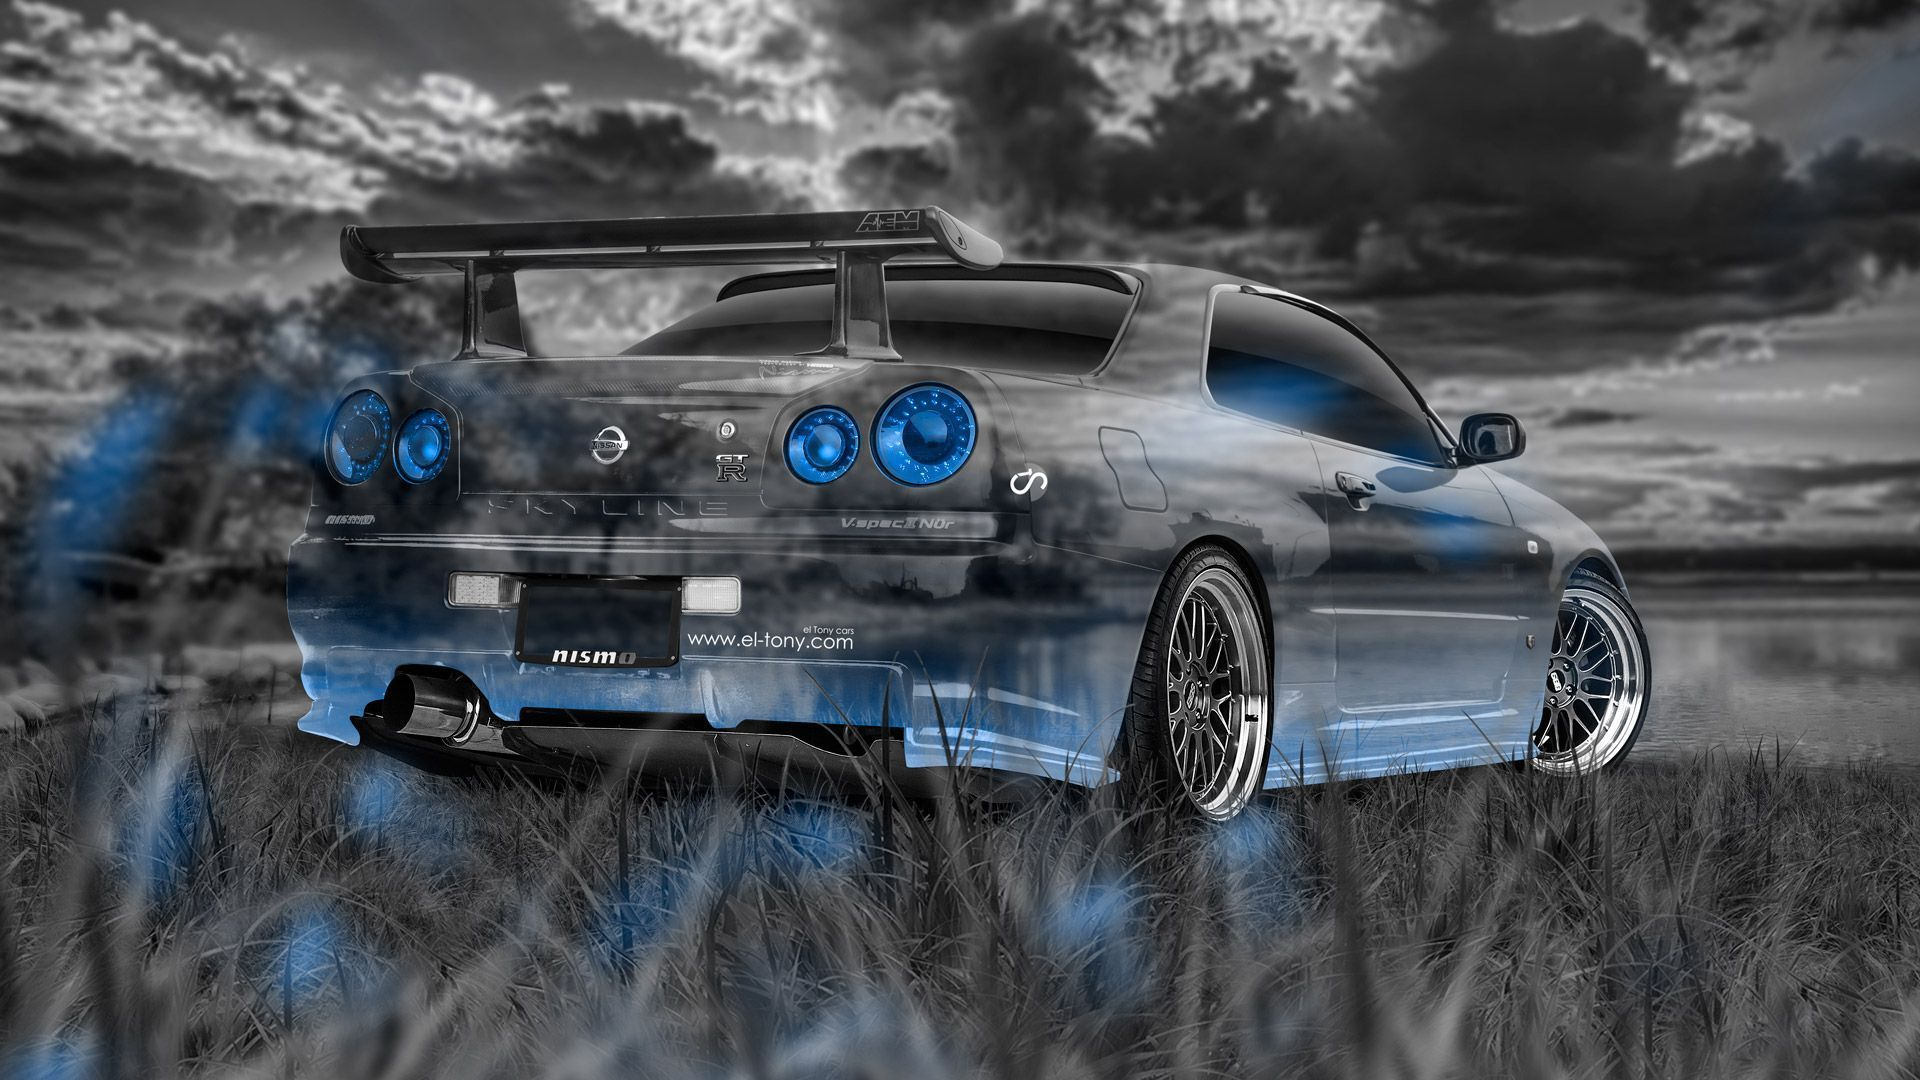 Incroyable Image Result For Nissan Skyline R34 Wallpaper | Cars | Pinterest | Nissan  Skyline